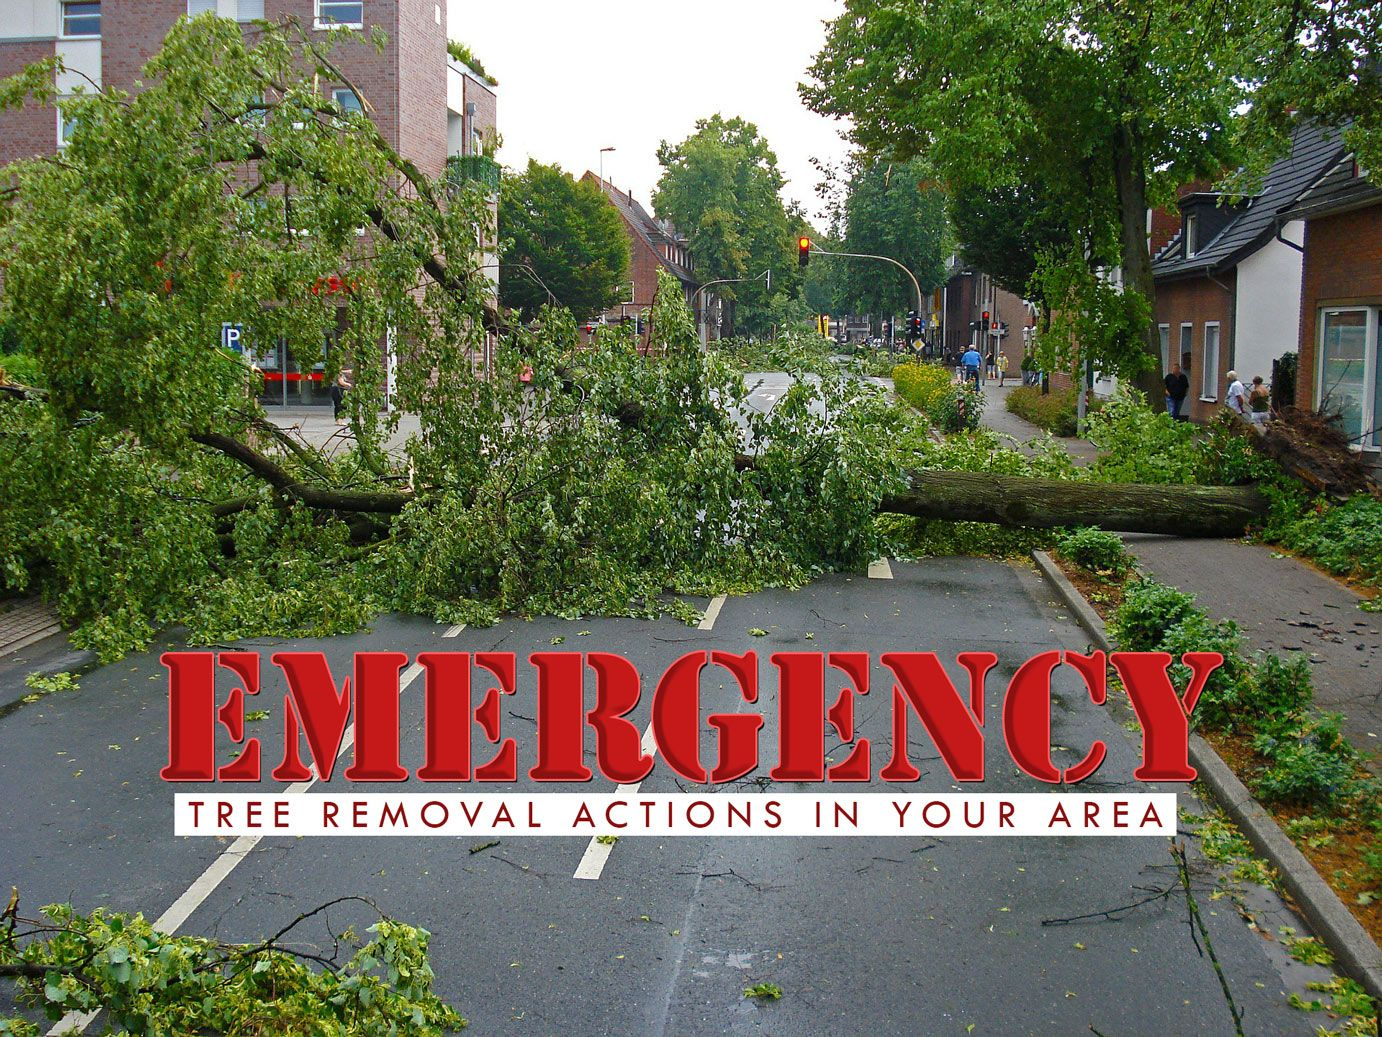 Emergency tree removal when and how to take an action